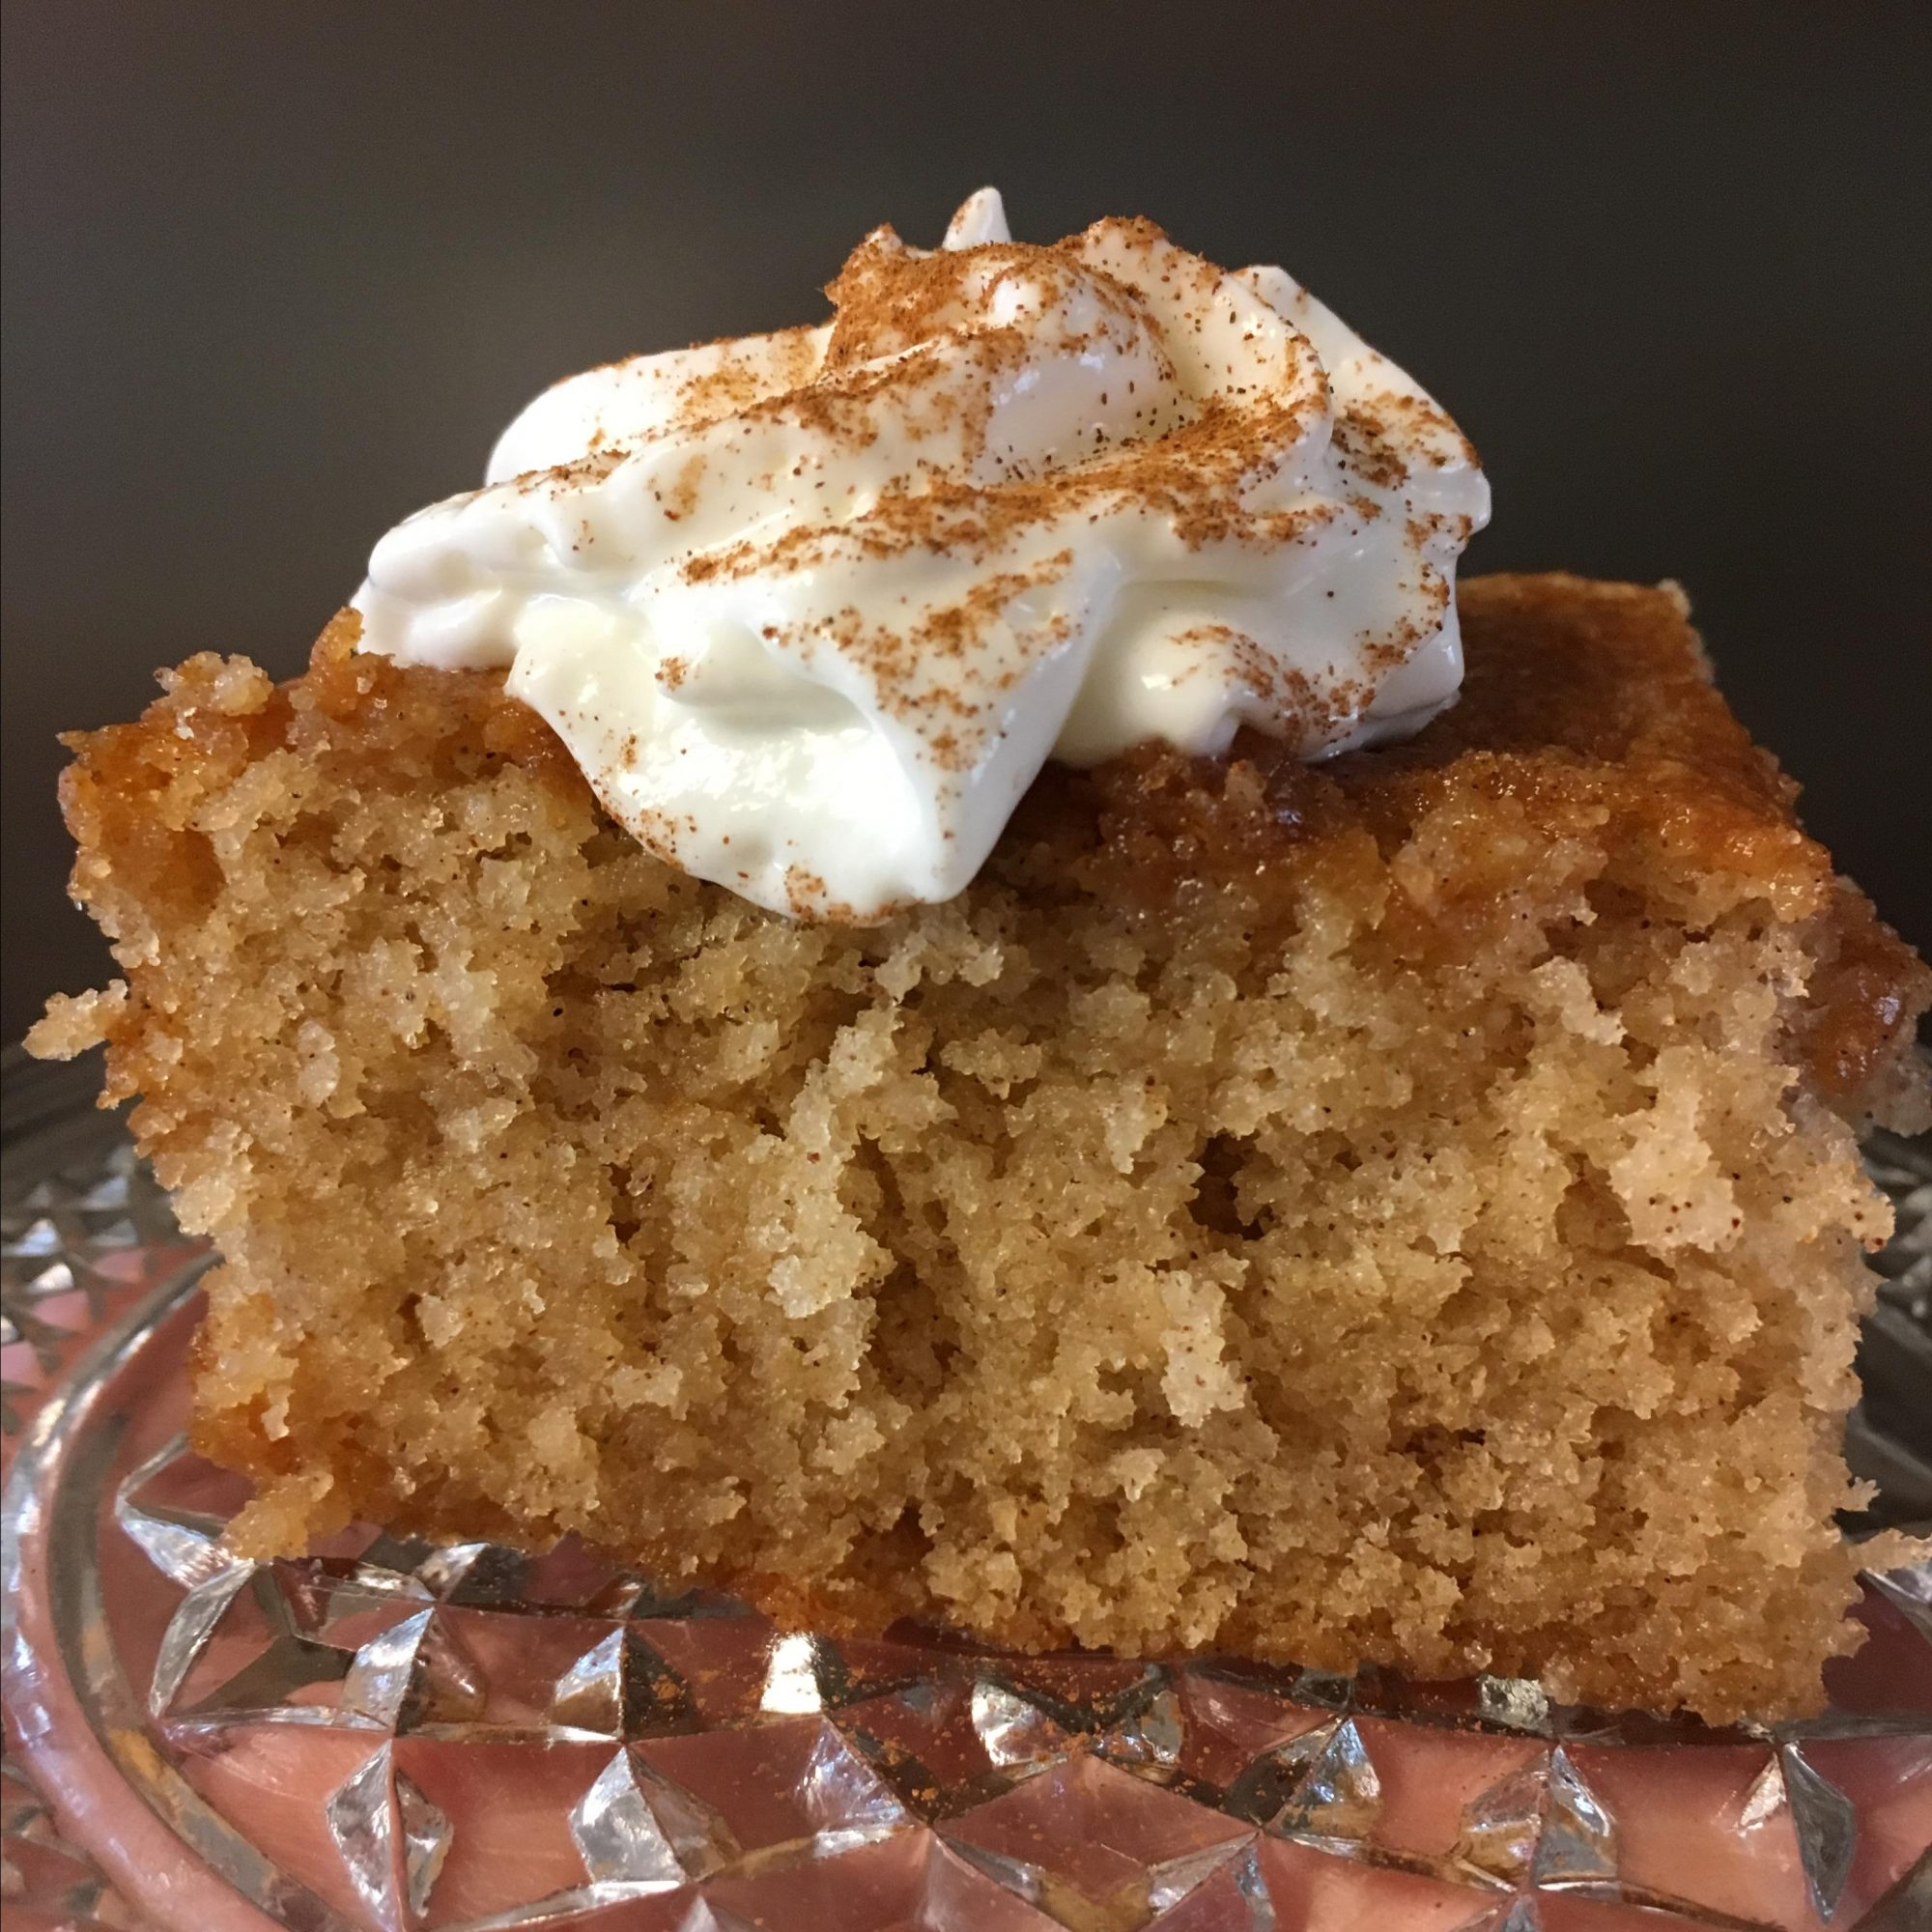 Buttery Cinnamon Cake on a glass cake stand